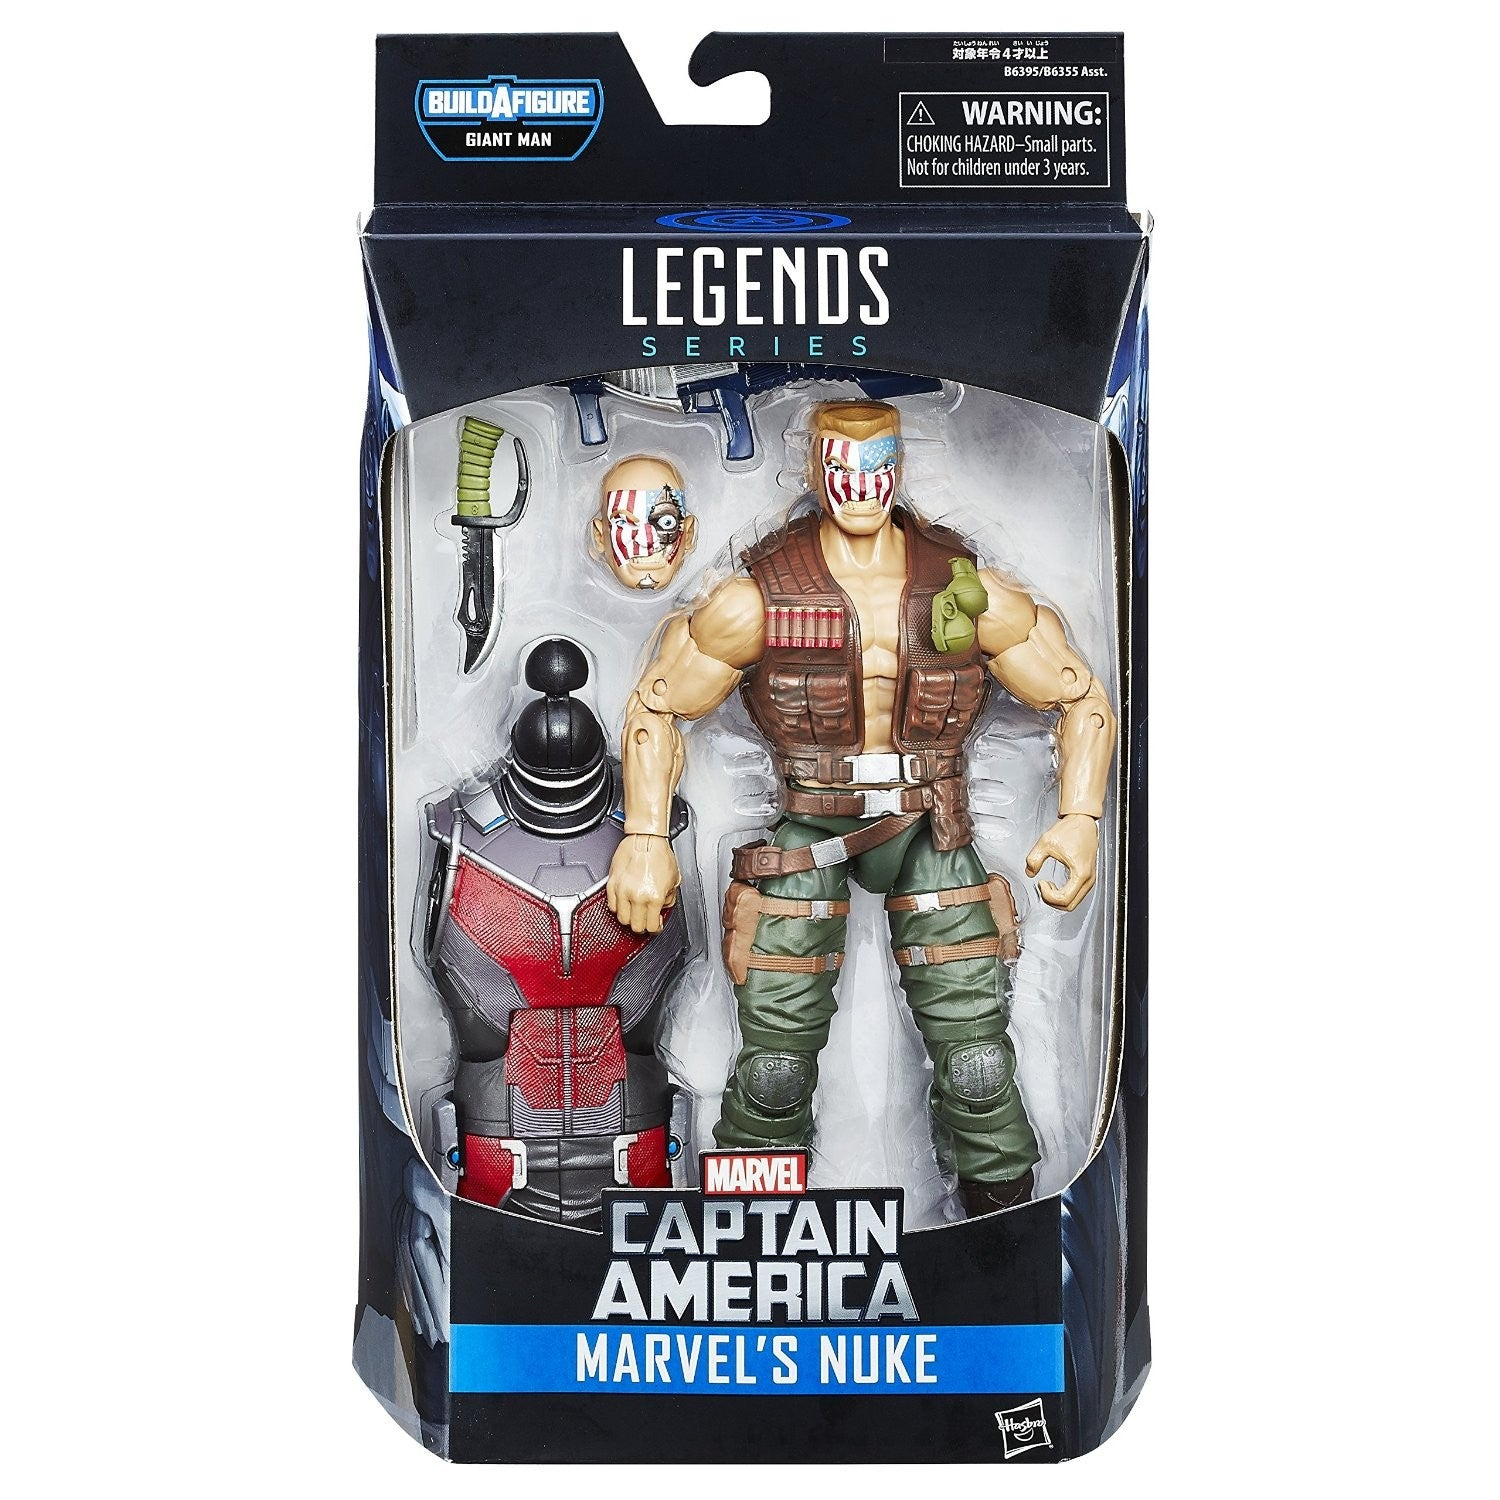 Marvel Legends Infinite - Giant Man BAF - Marvel's Nuke (B6395)